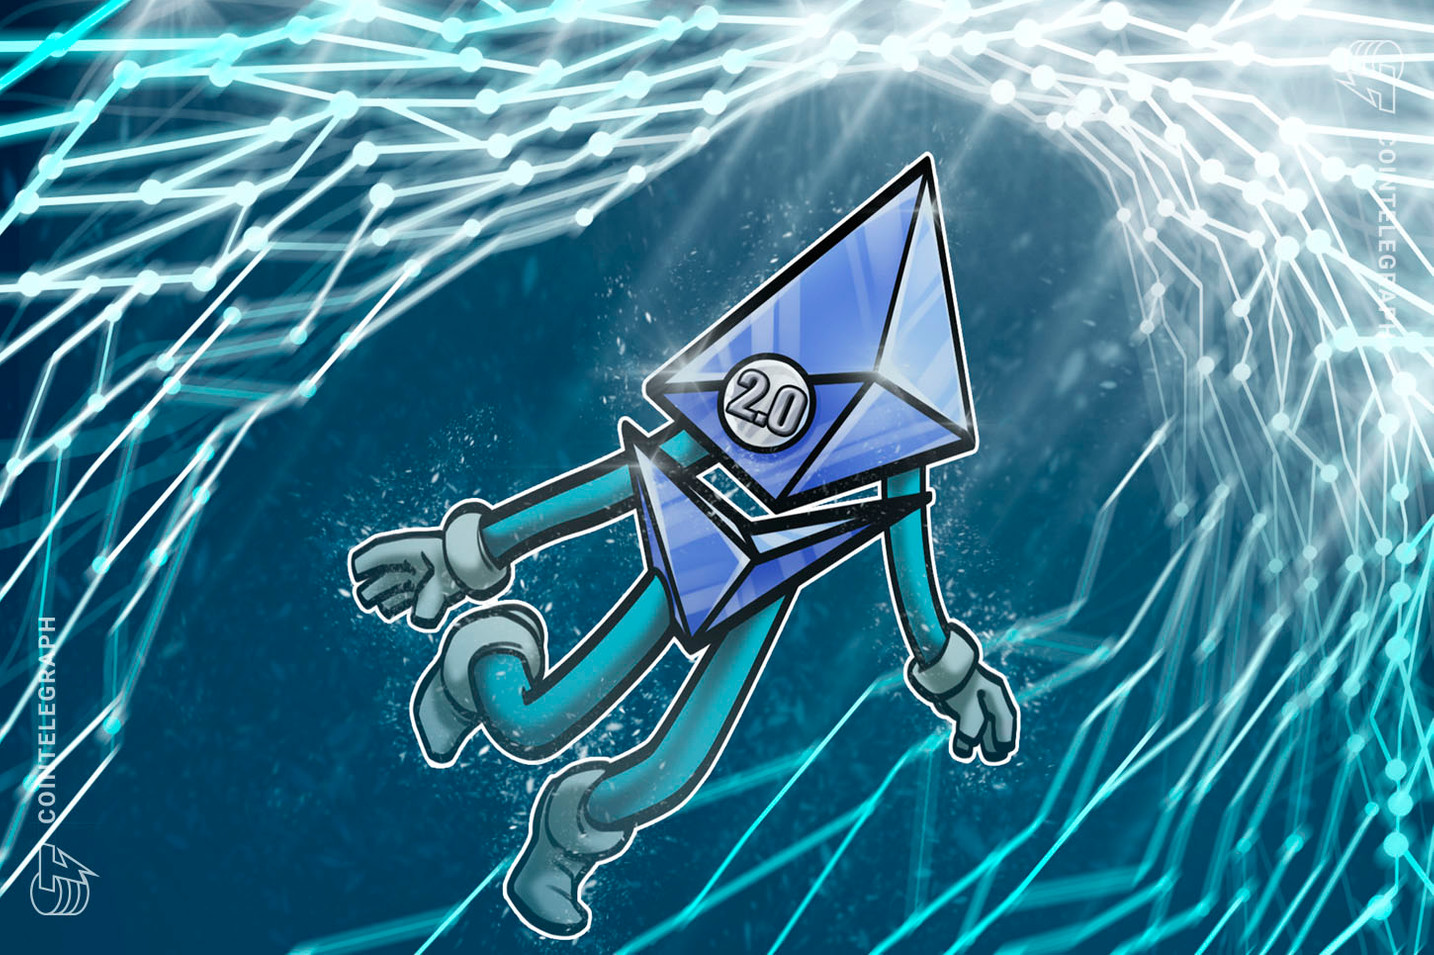 Ethereum 2.0 confirmed for Dec. 1 launch just hours before deadline